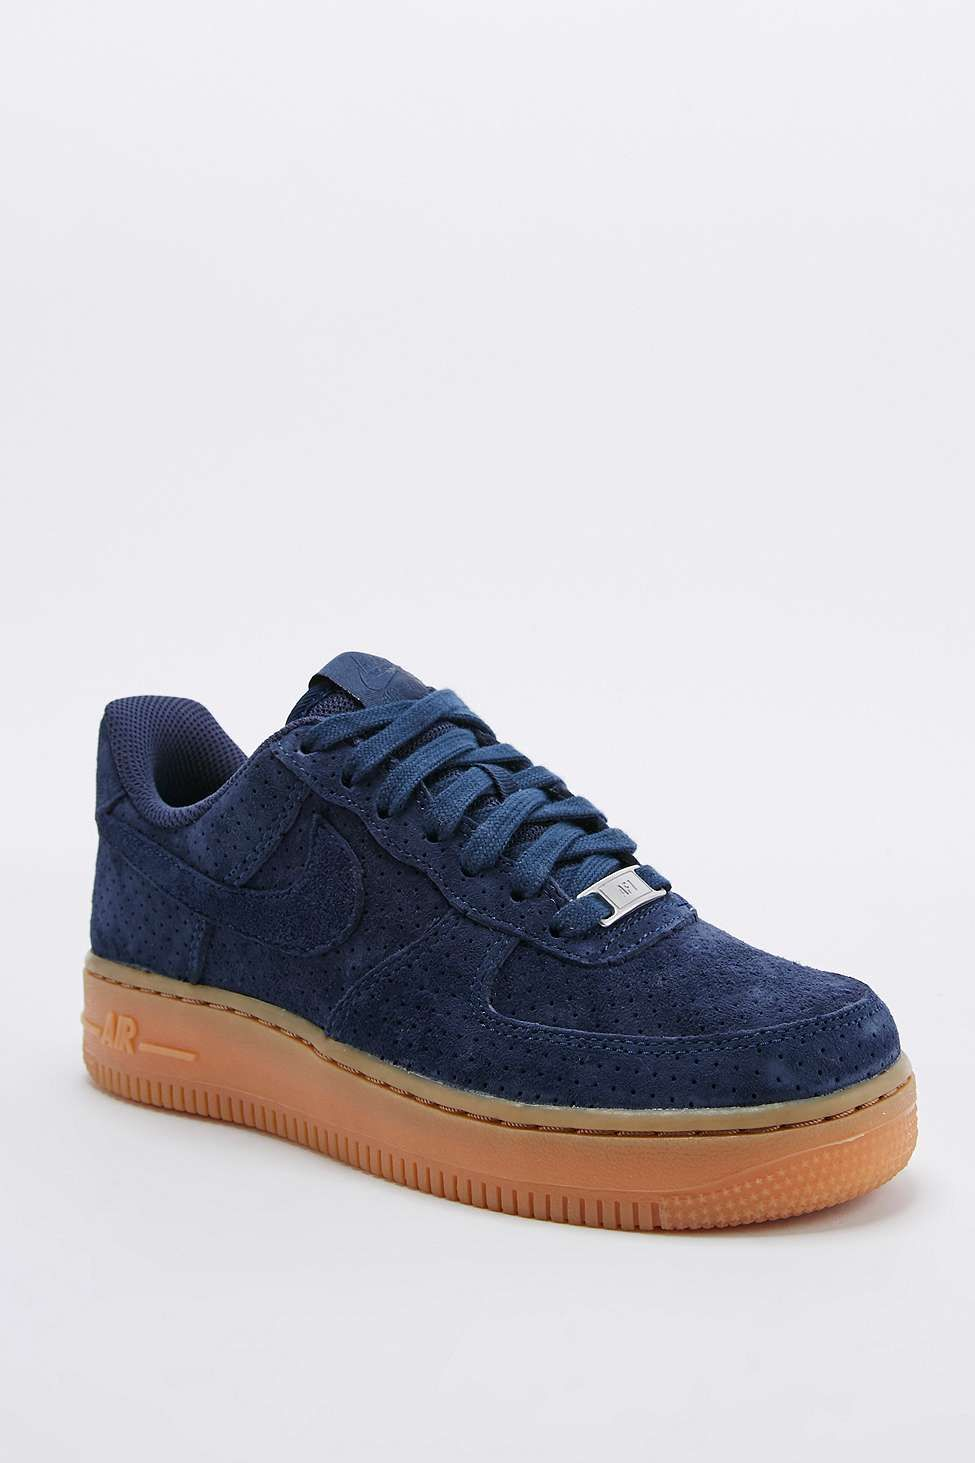 Nike Air Force 1 07 Baskets en daim Bleu marine